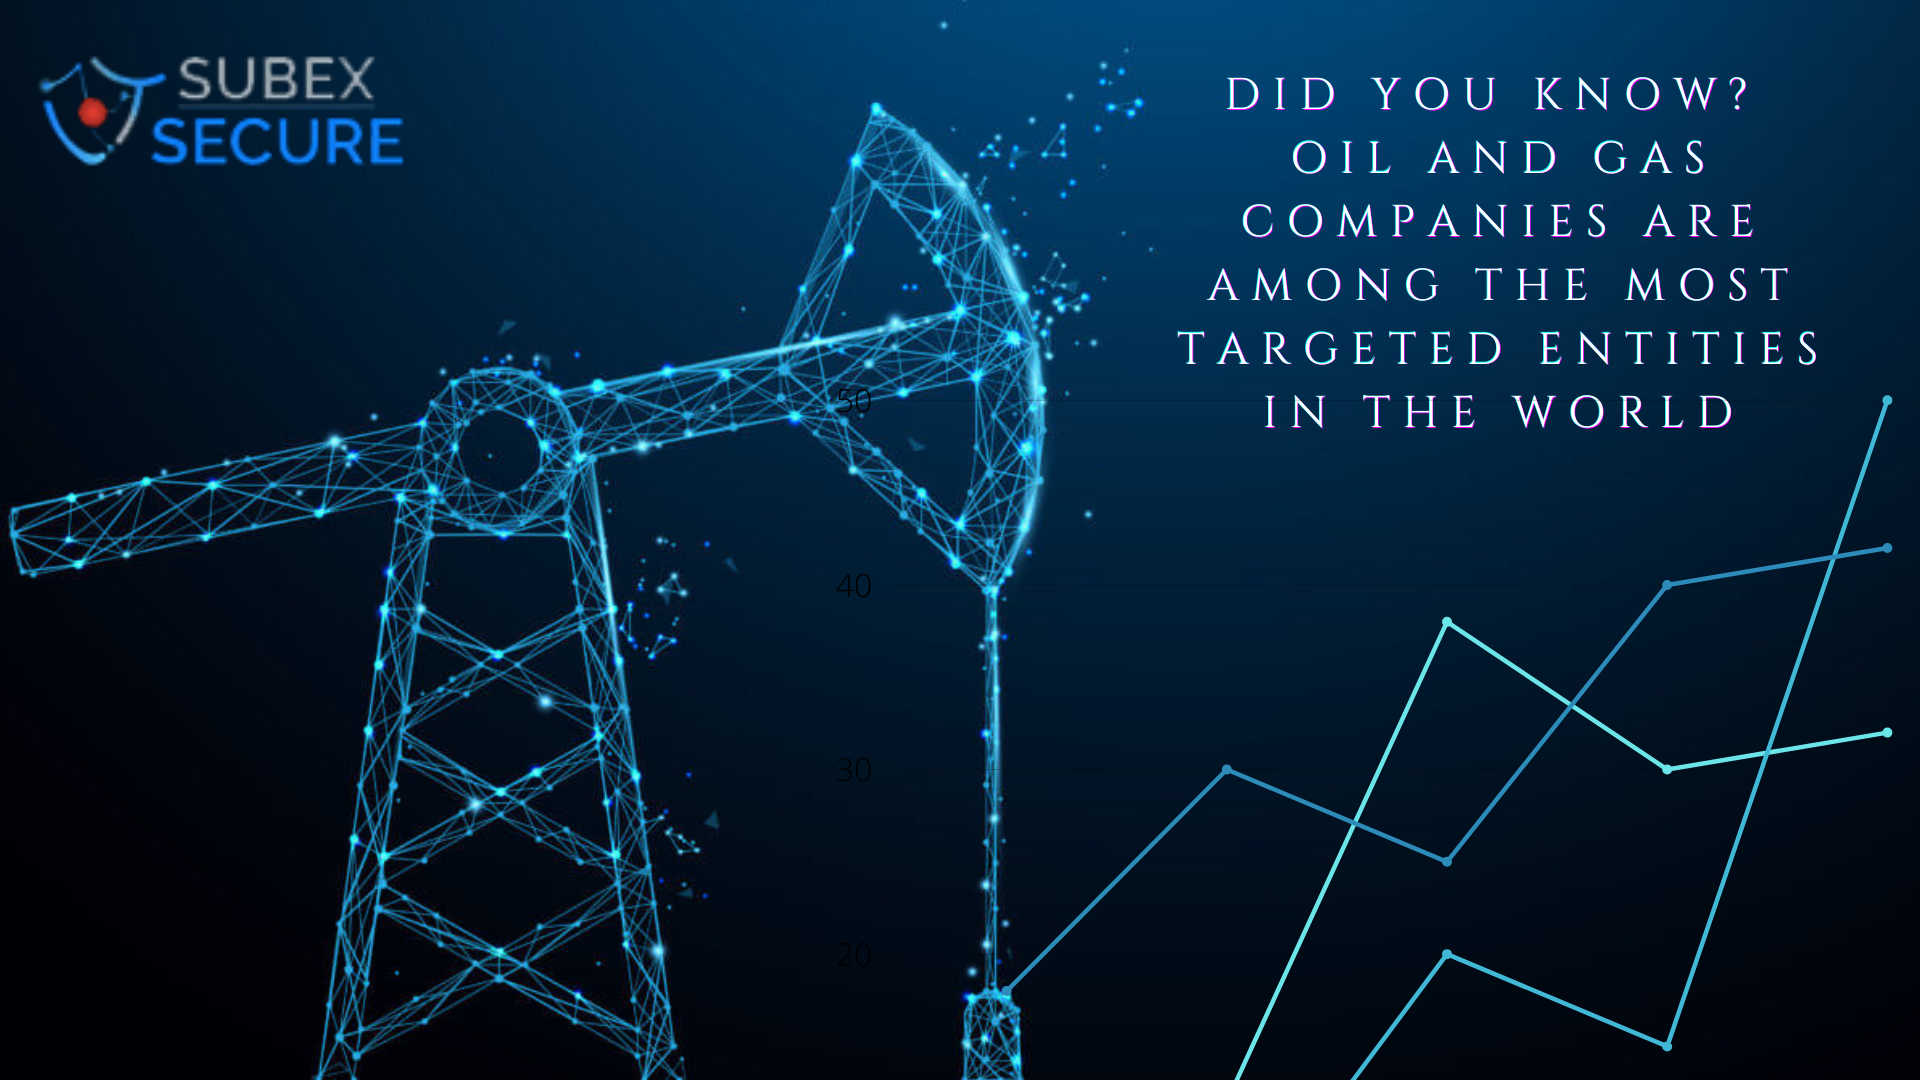 Oil and gas Exploration entities under immediate threat as Subex Secure's threat research identifies an increasing trend in the amount of Cyberattacks.